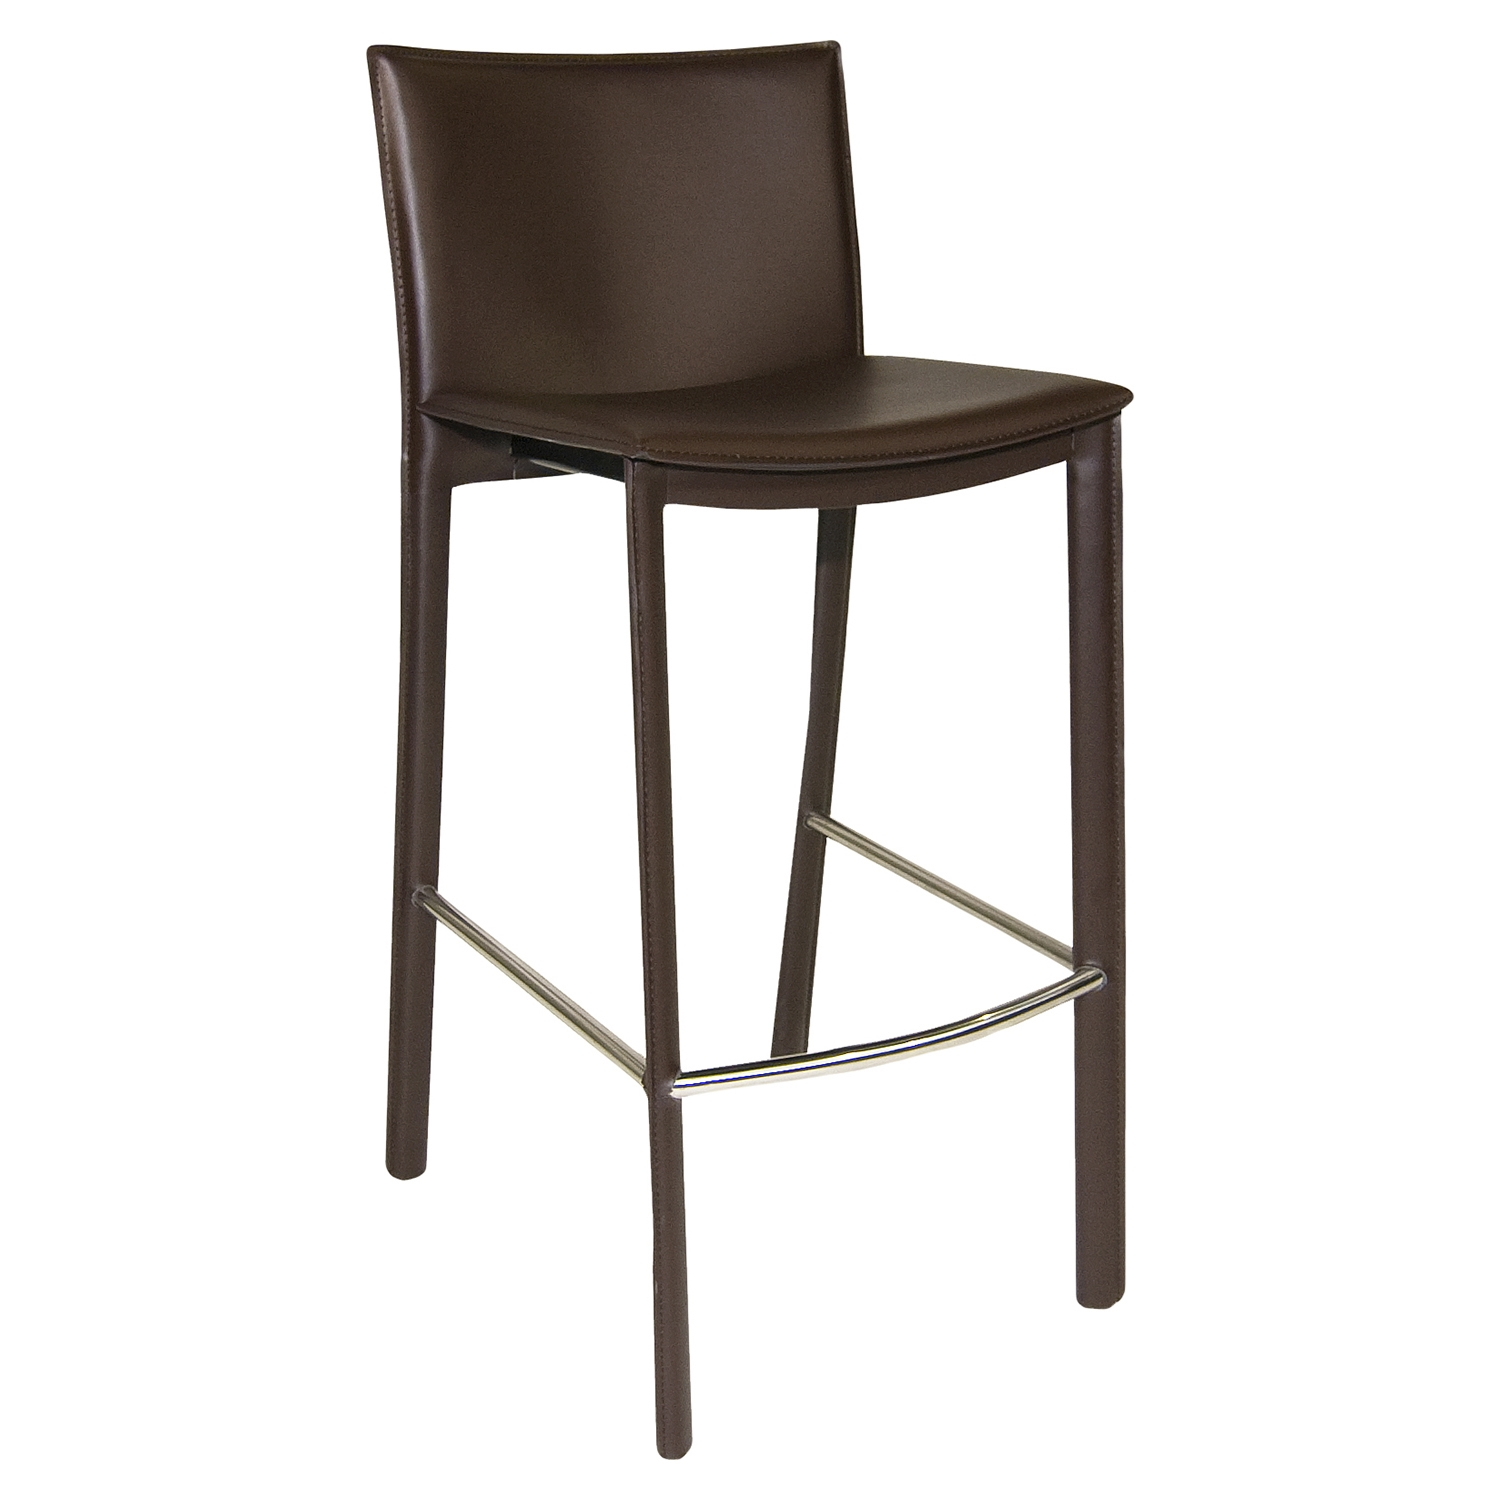 Panca Counter Stool - Dark Brown